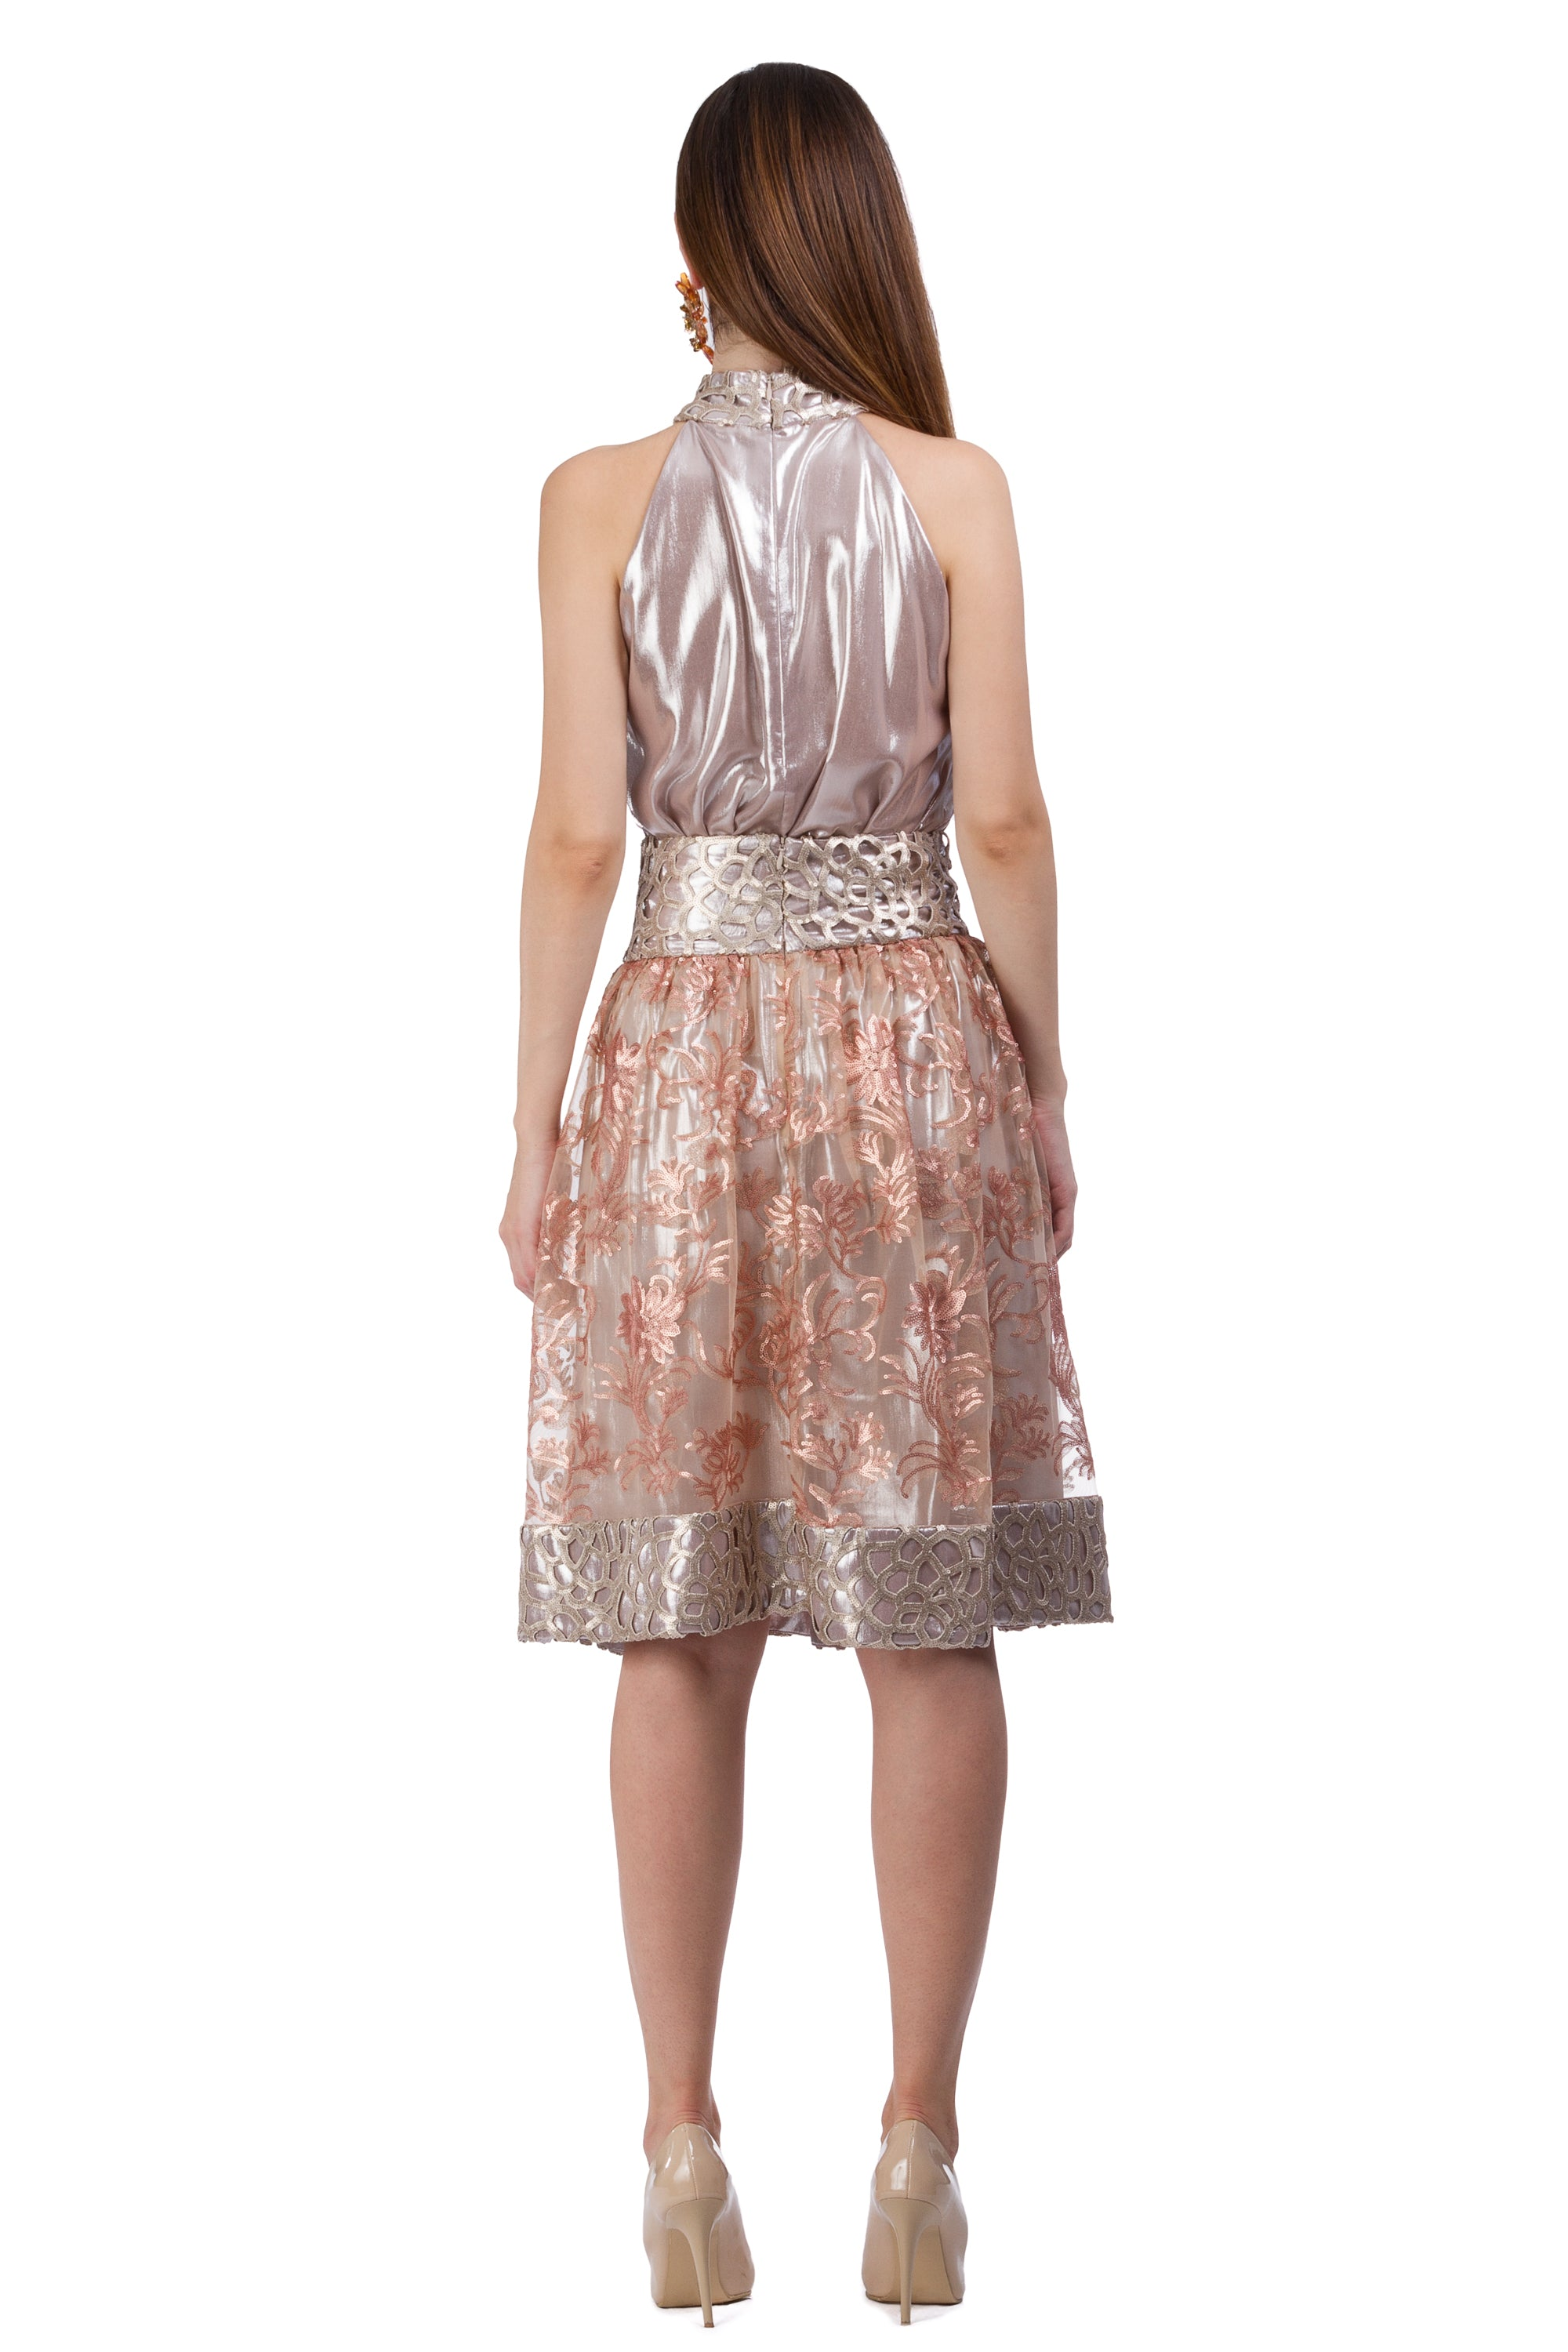 Lace skirt with fine gold and copper floral elements